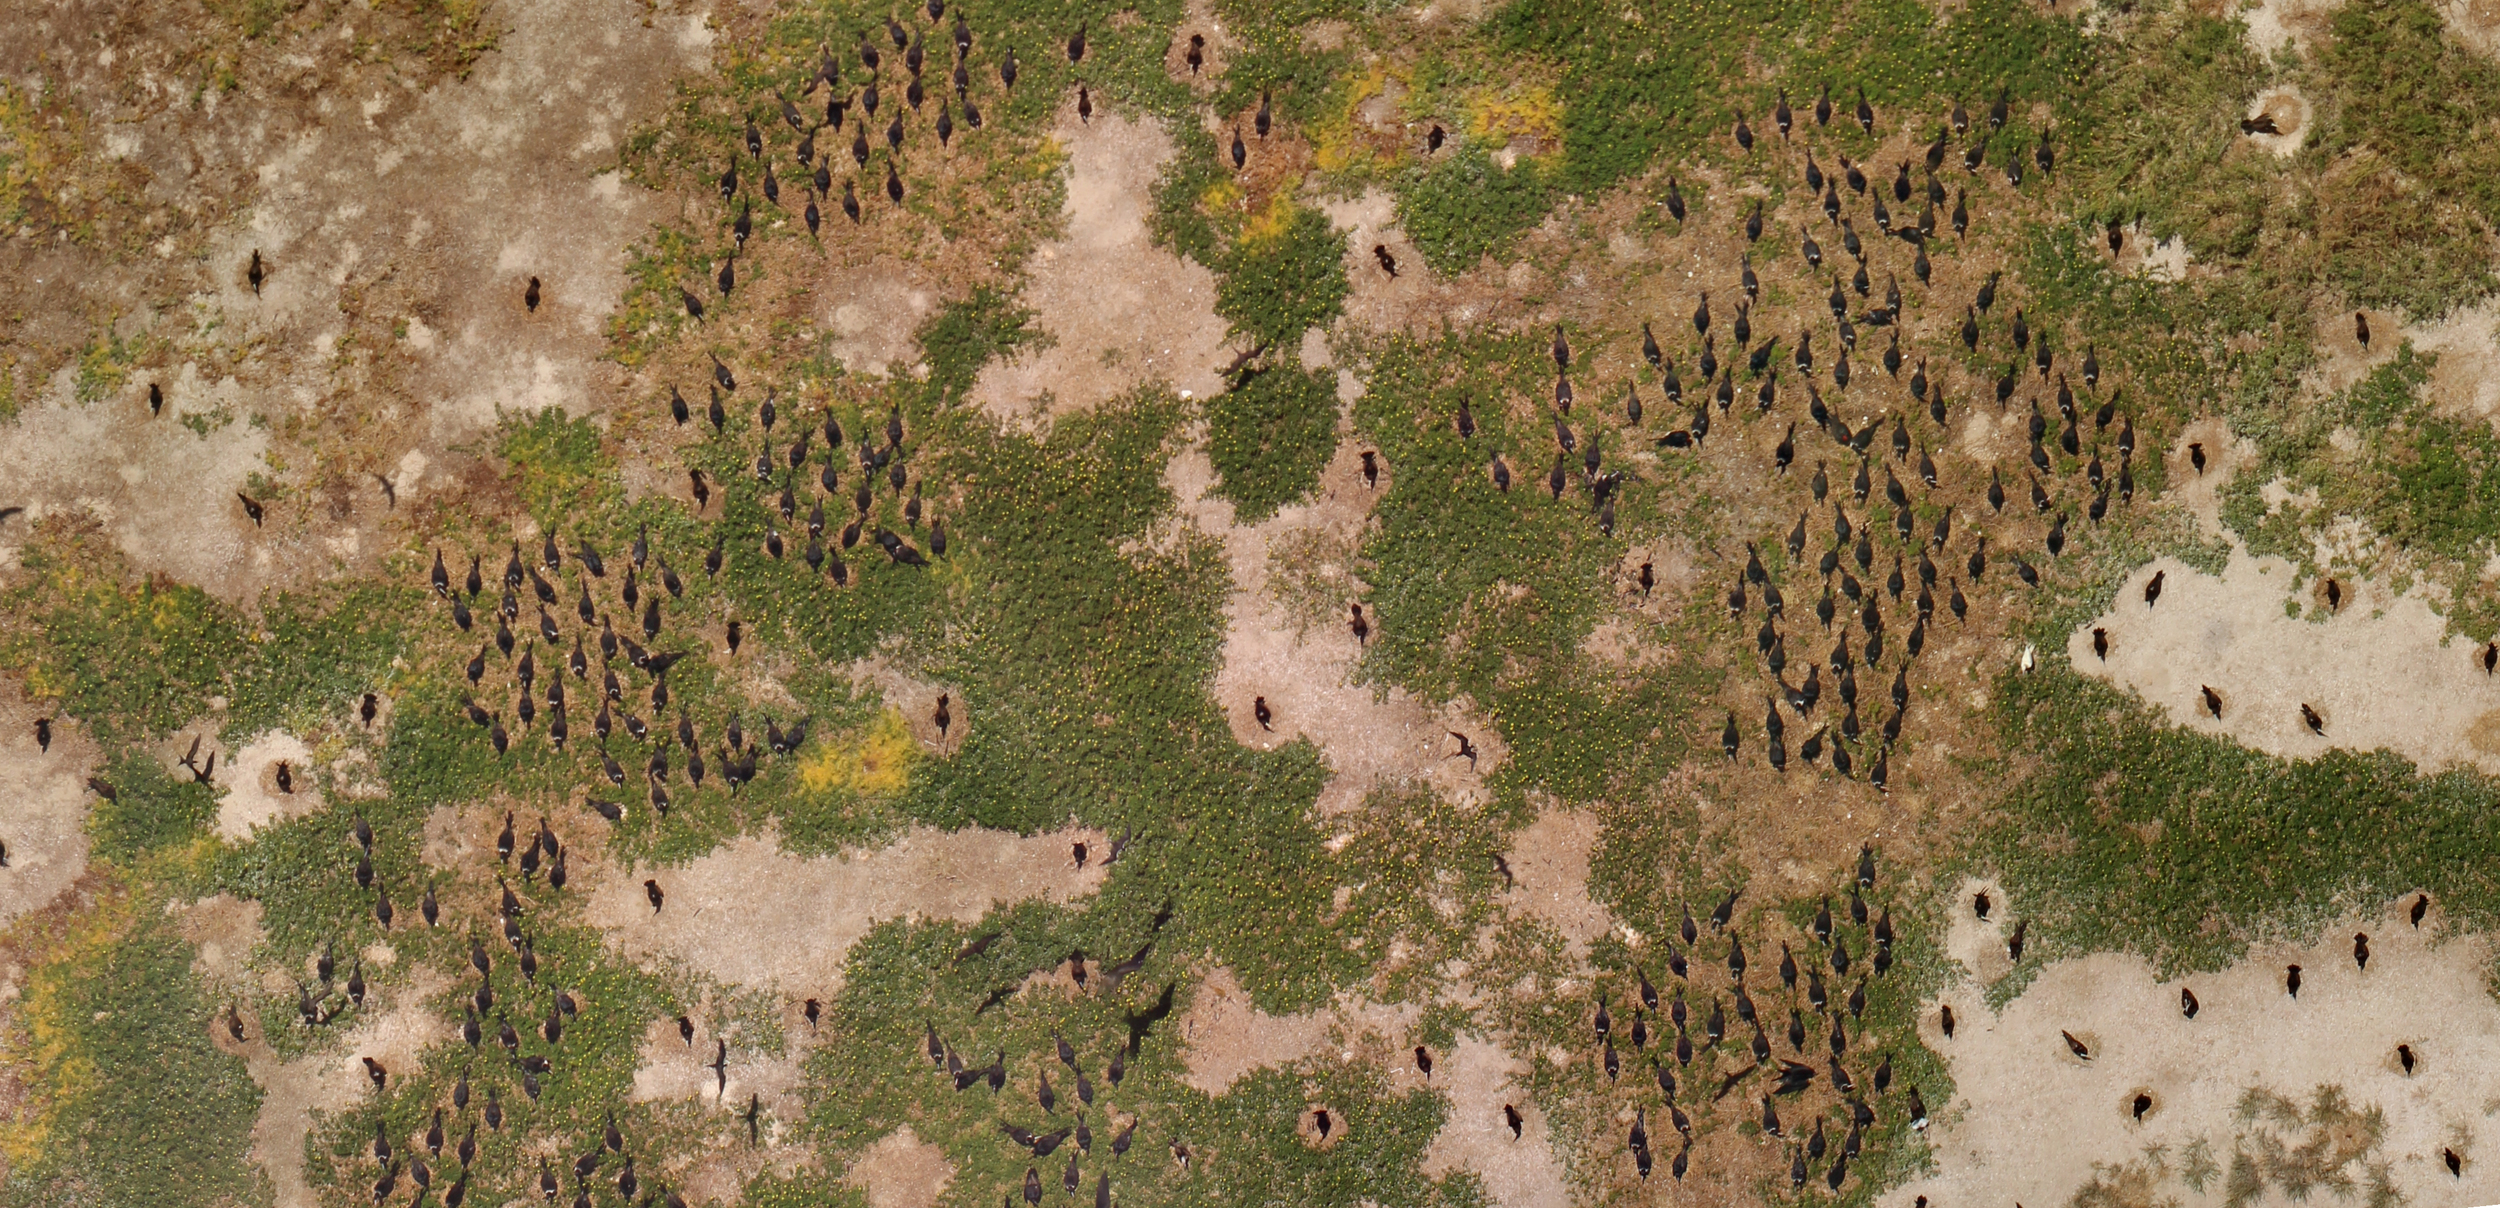 An image of the seabird colony taken by the team's UAVs. Image: Jarrod Hodgson